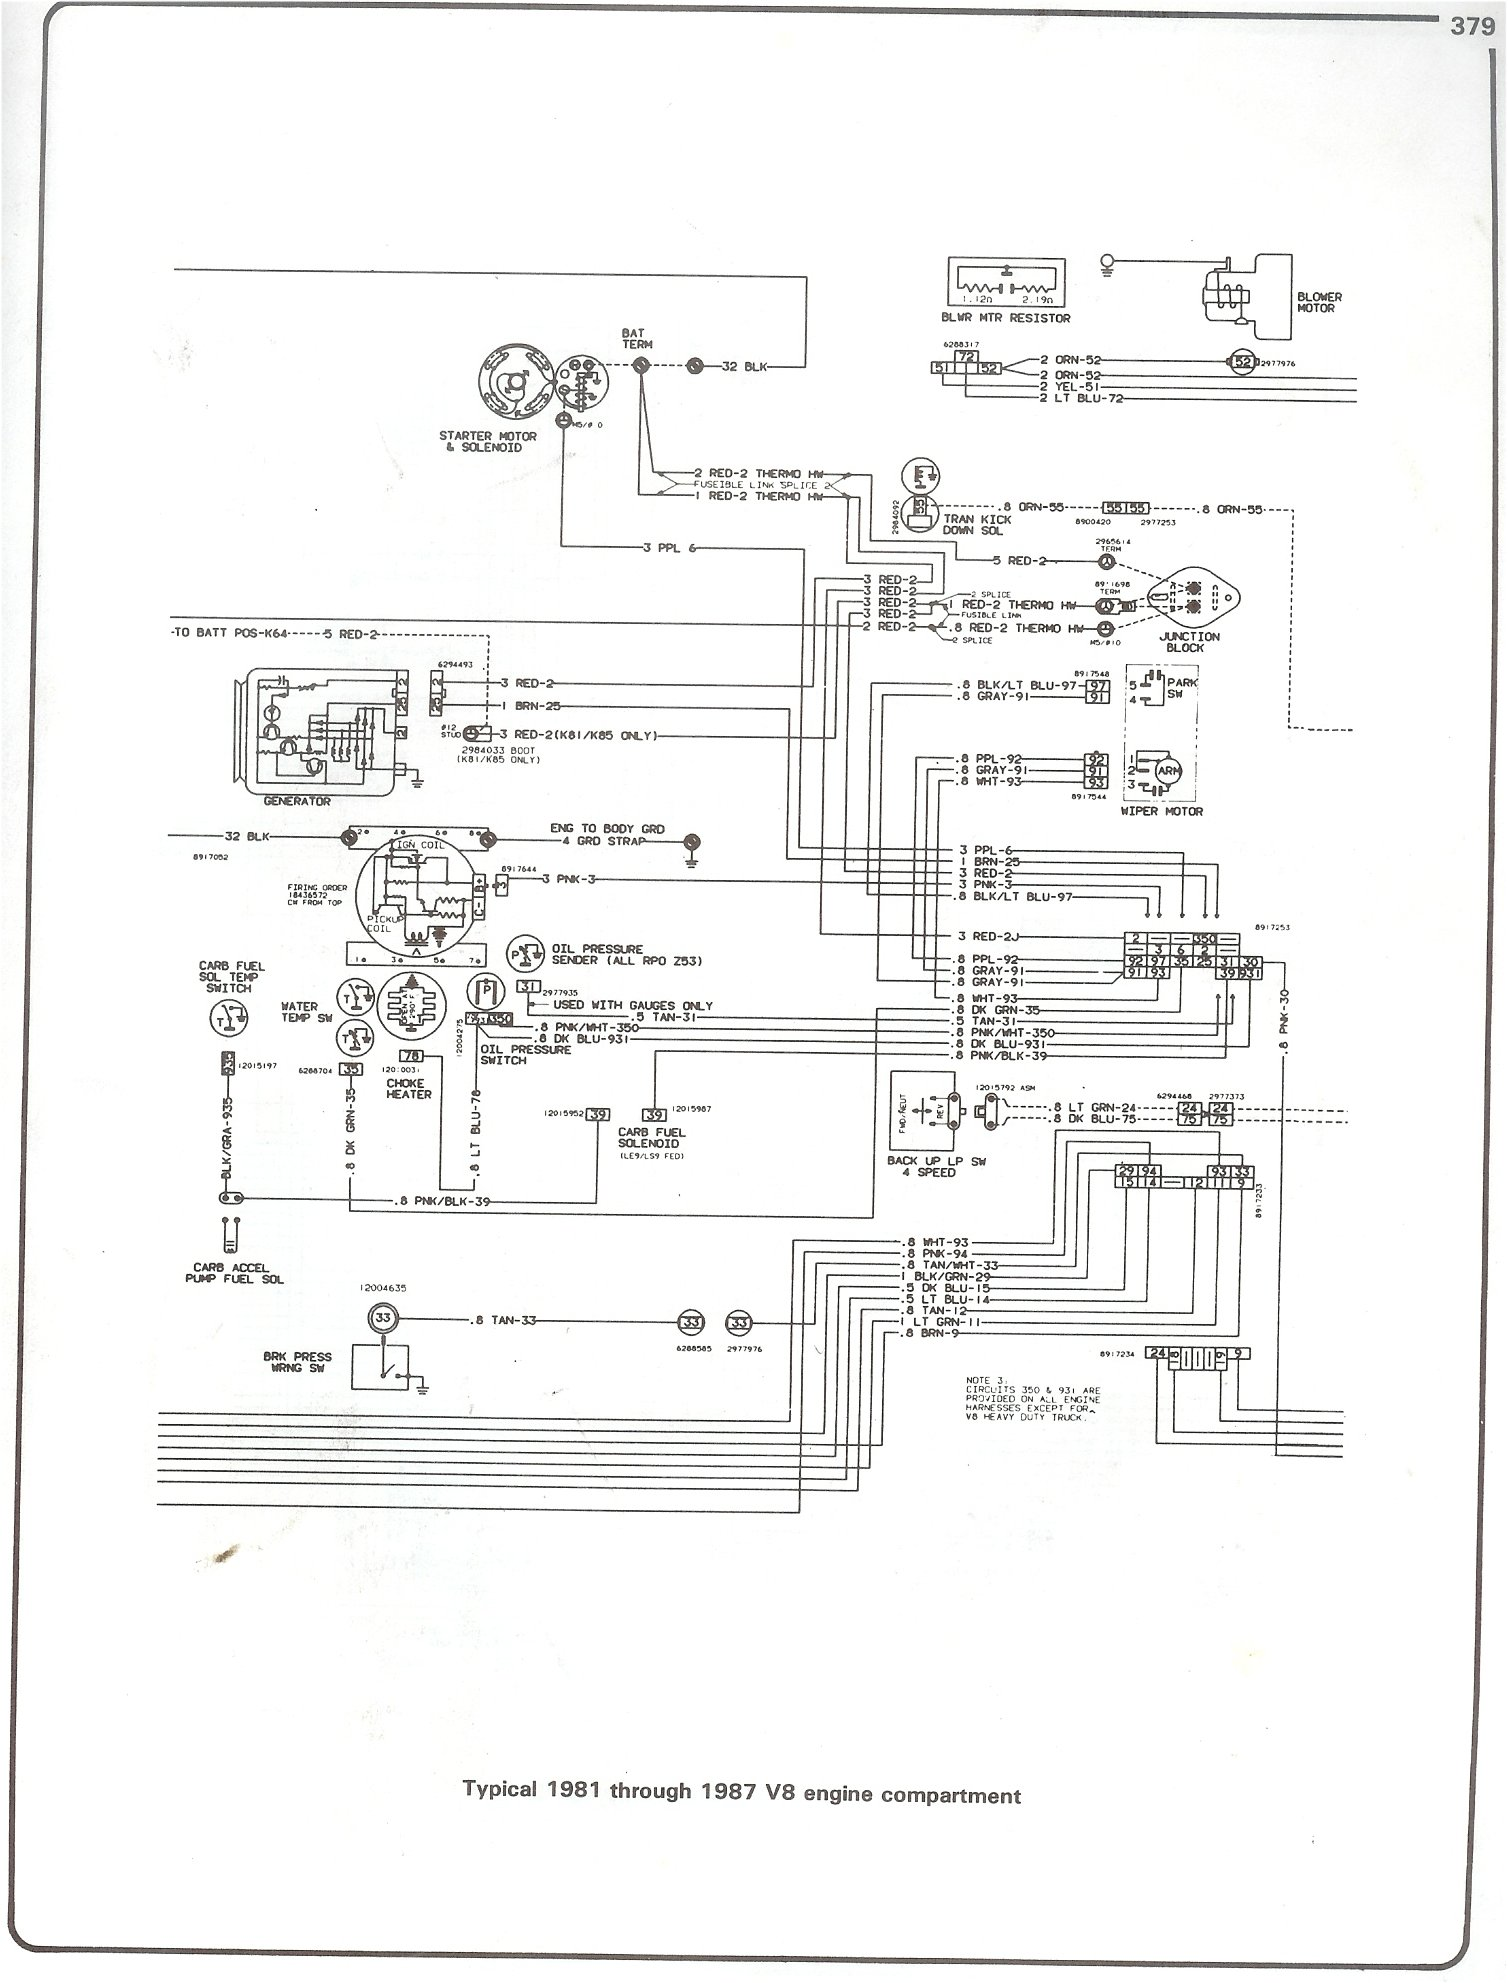 82 Chevy Pickup Wiring Diagram | Repair Manual on